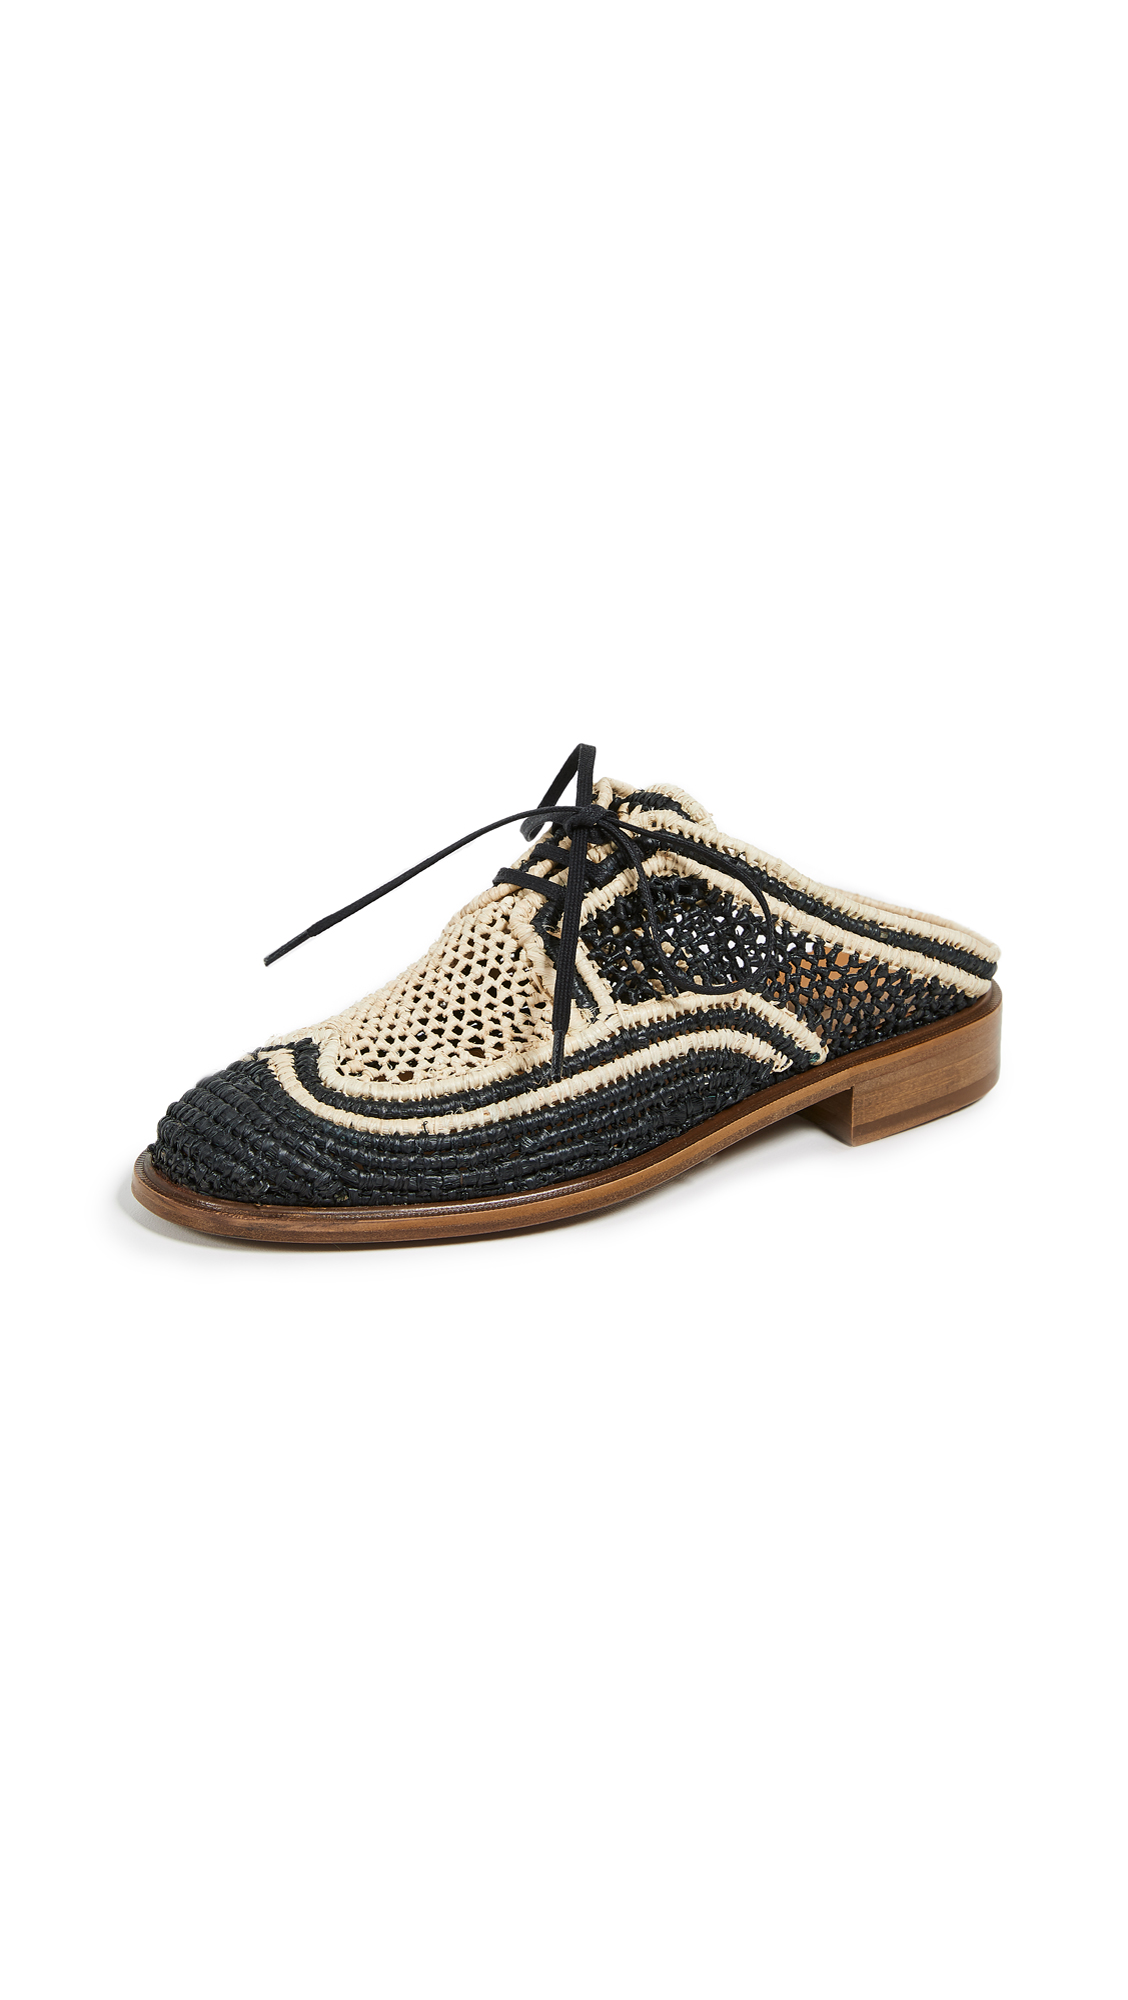 Robert Clergerie Jaly Oxford Mules - Black